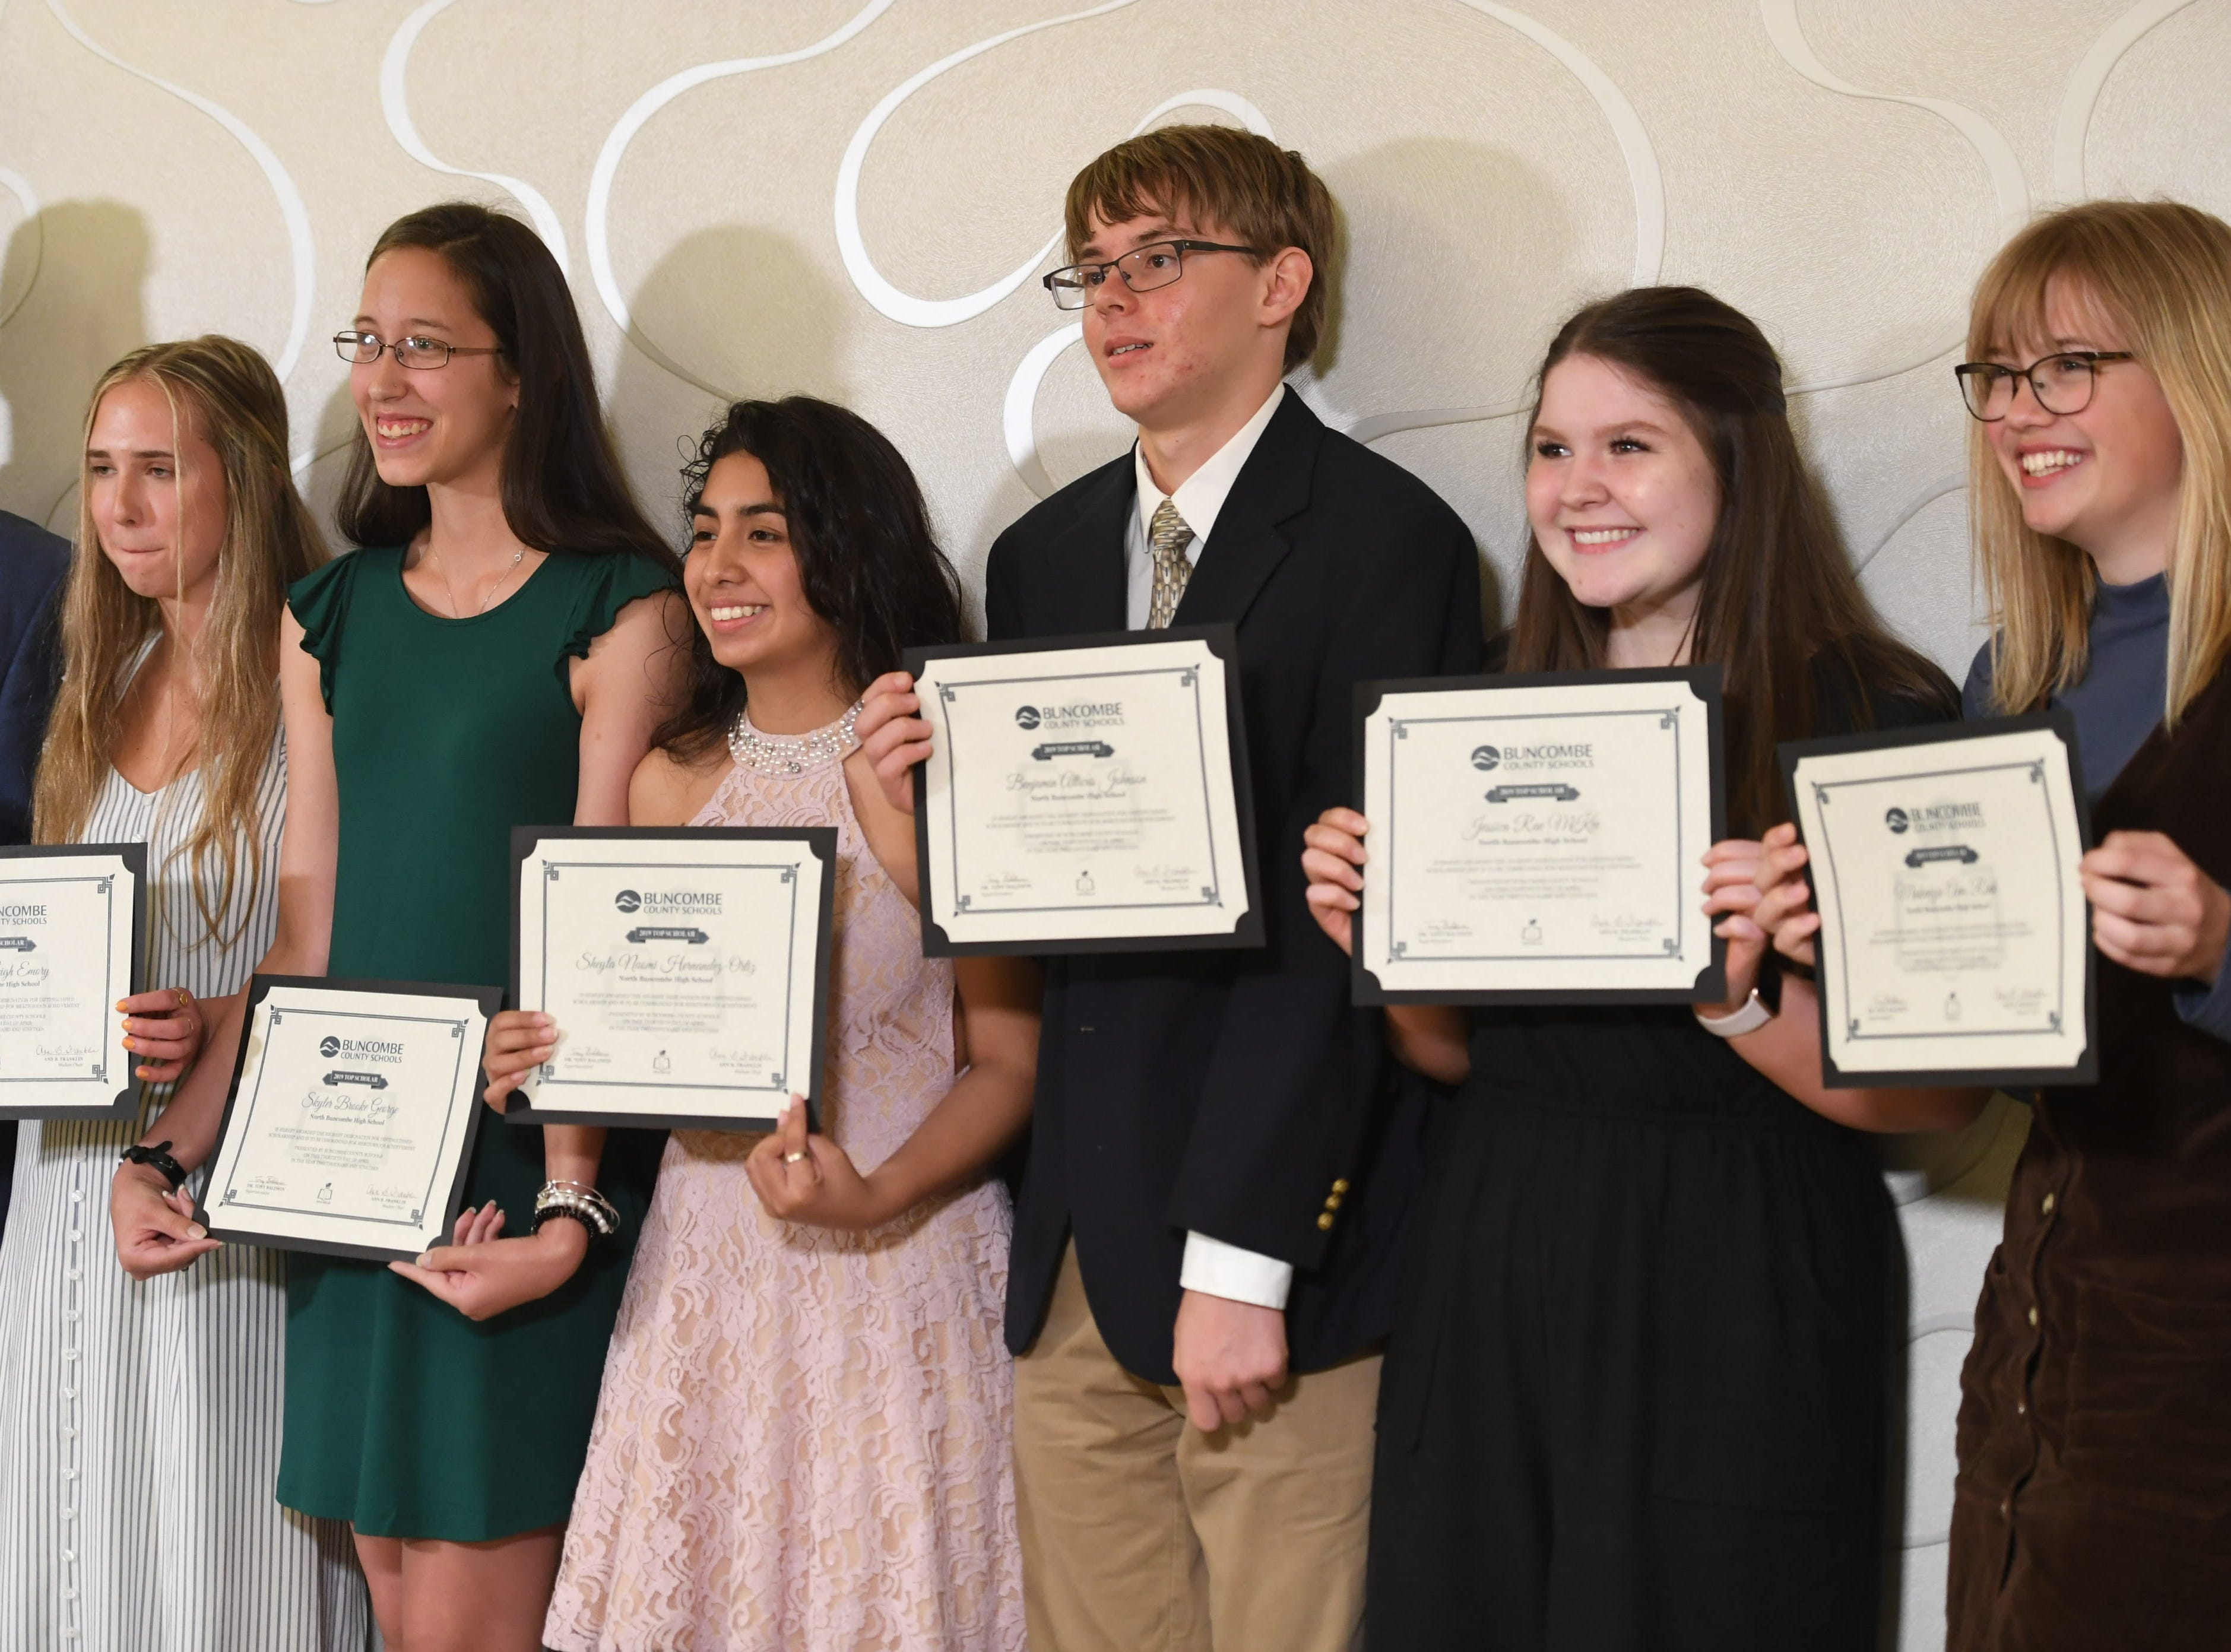 The Buncombe County Top Scholars Banquet was held April 30, 2019 at the Renaissance Hotel in Asheville.